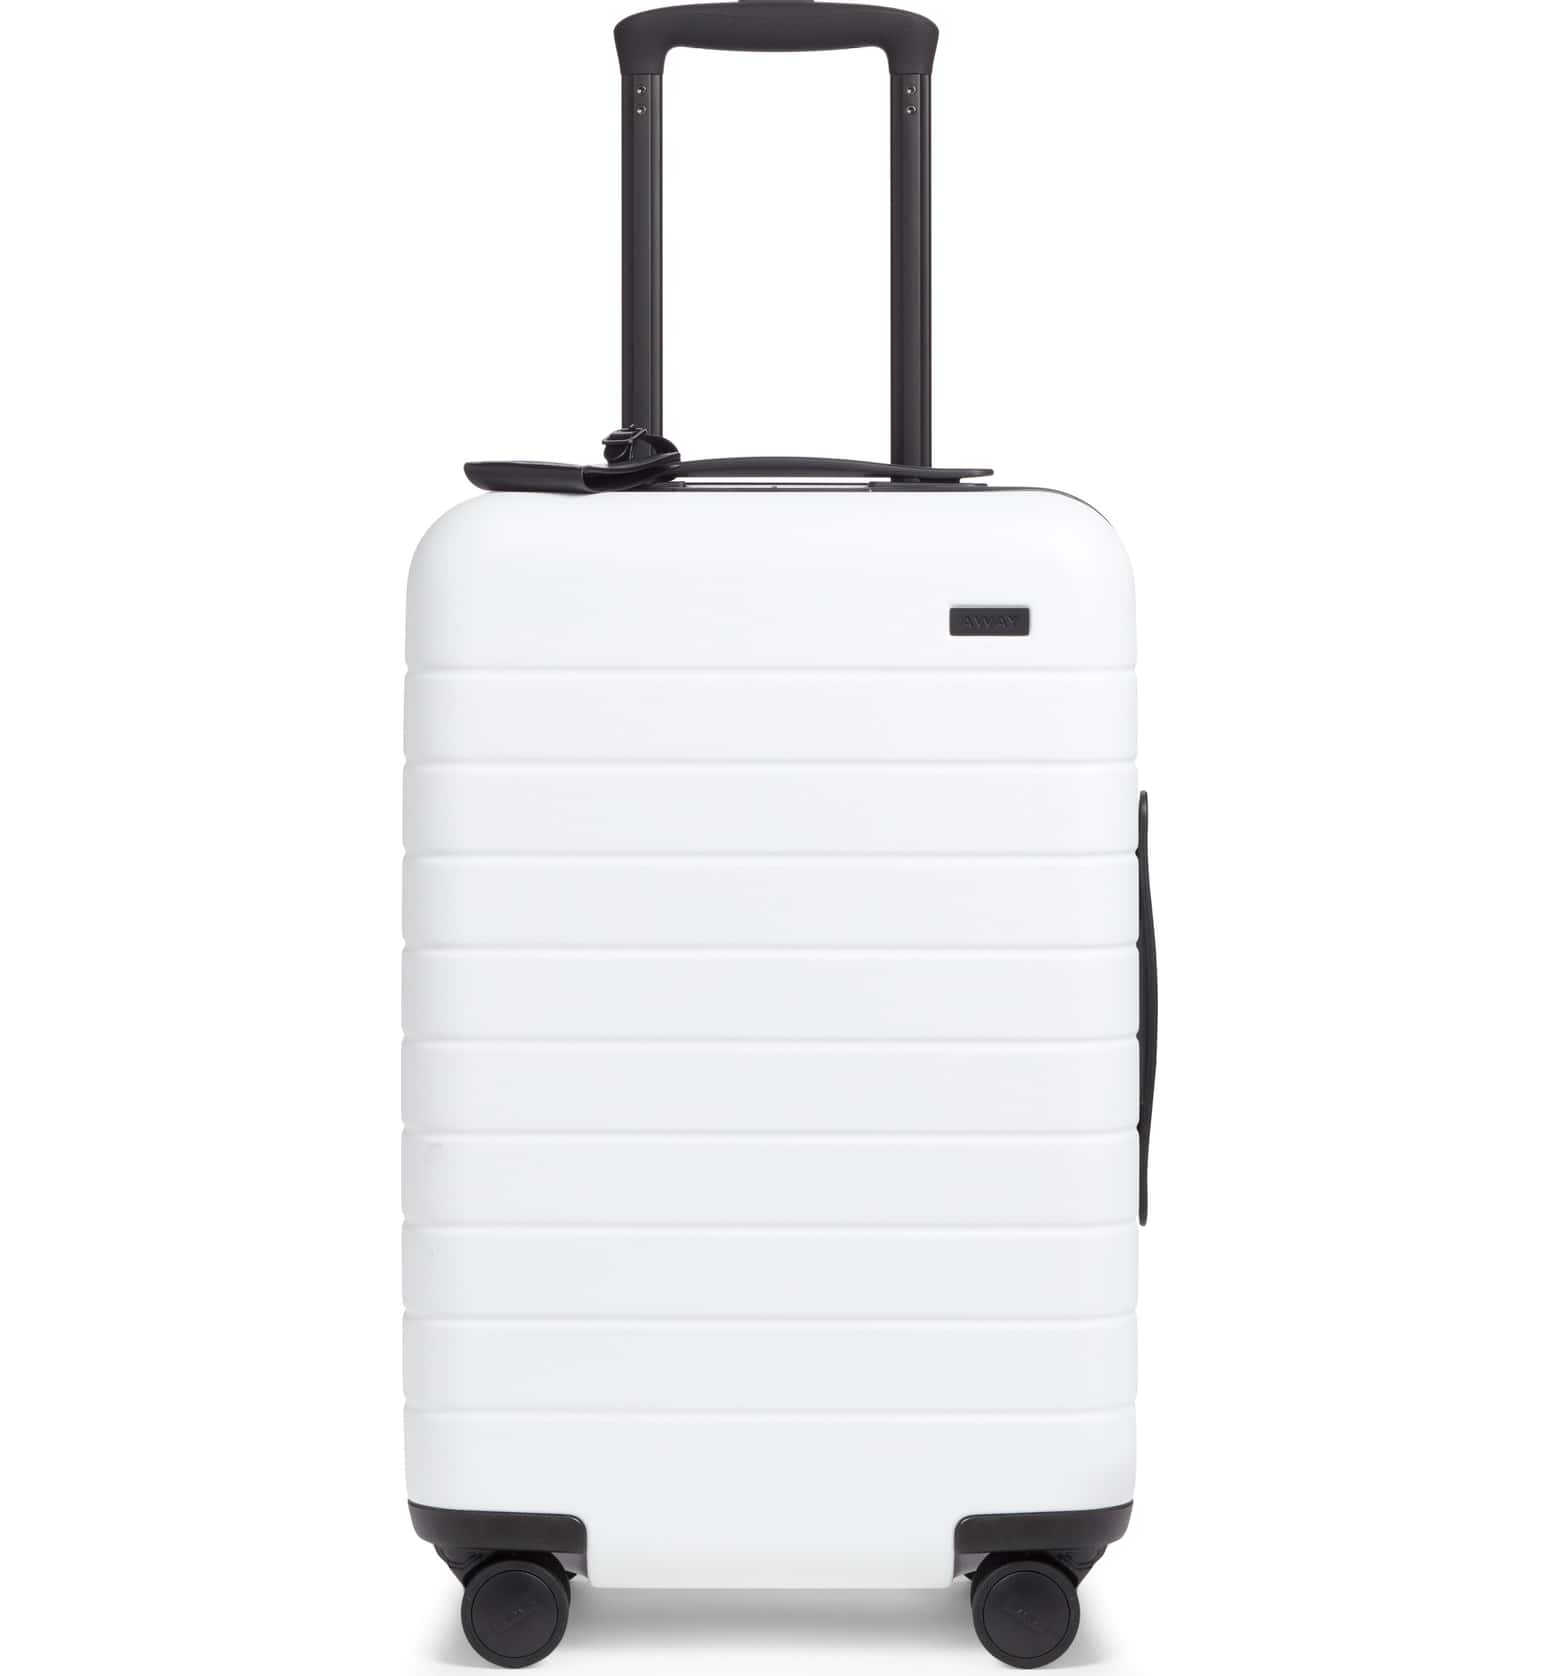 This Celeb-Loved Suitcase Brand is at Nordstrom: Away The Carry On